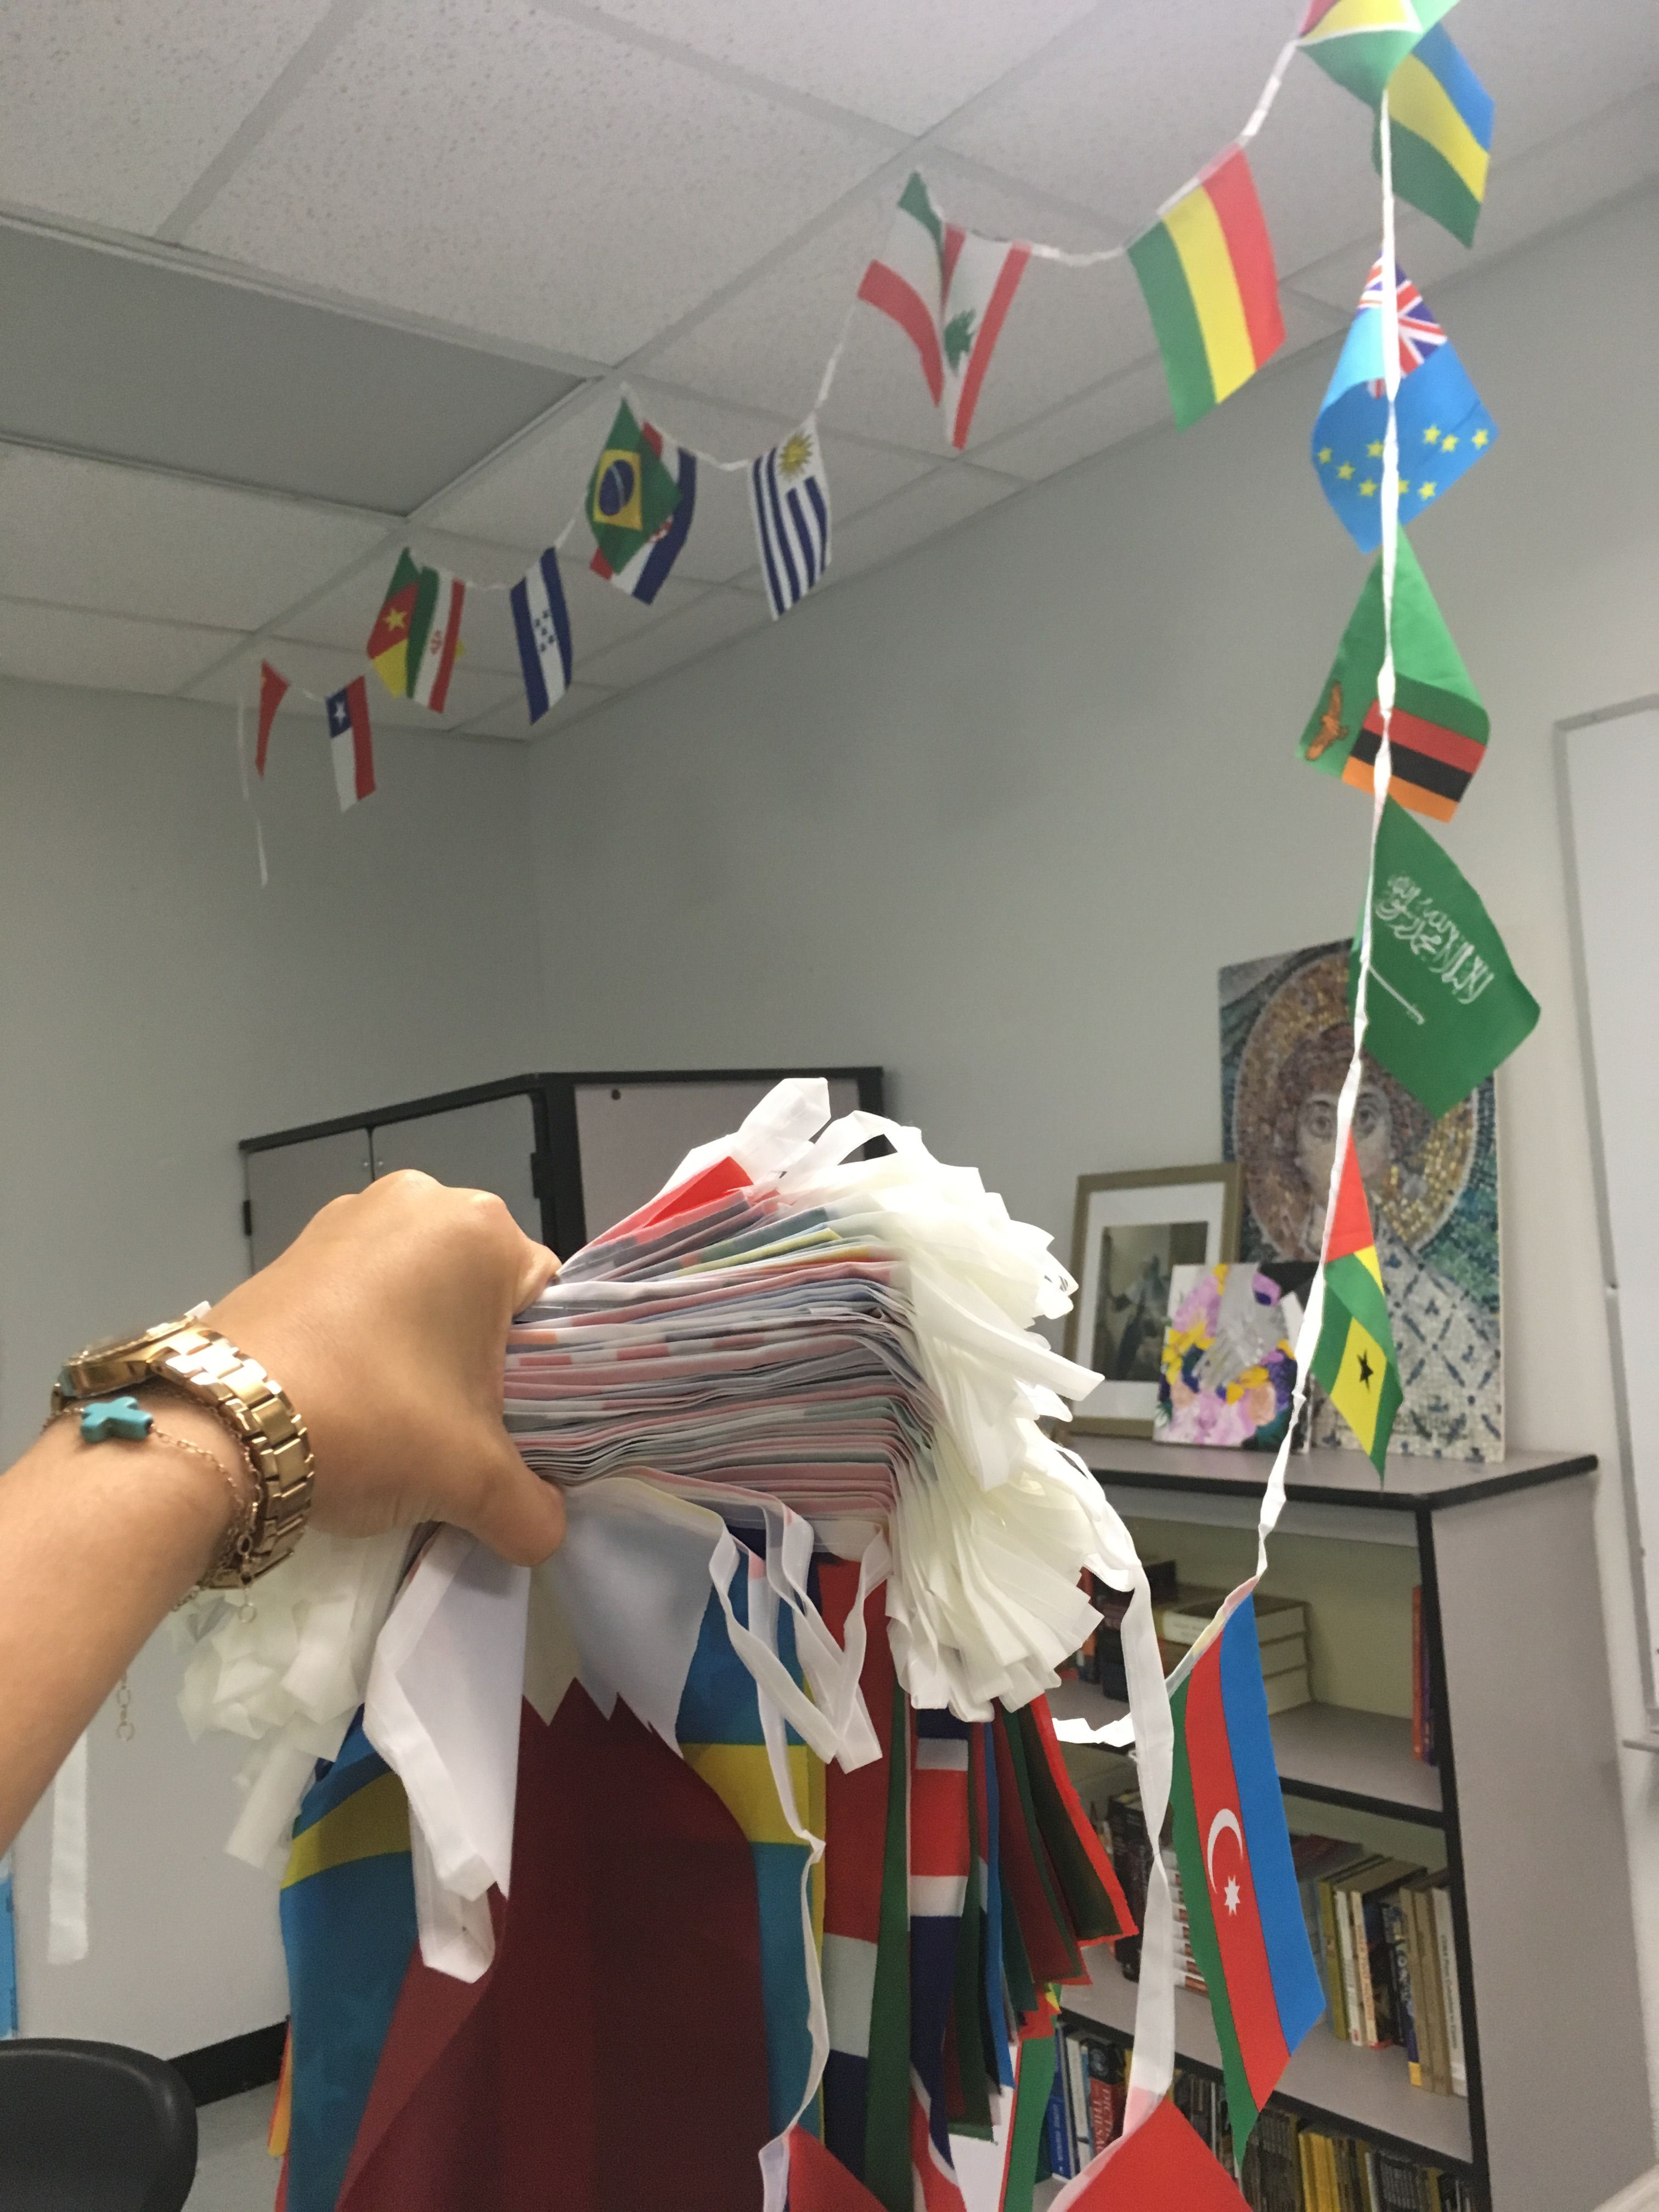 Decorating A World History Classroom With Flags From Around The Globe Jisforjourney History Classroom Decorations World History Classroom History Classroom